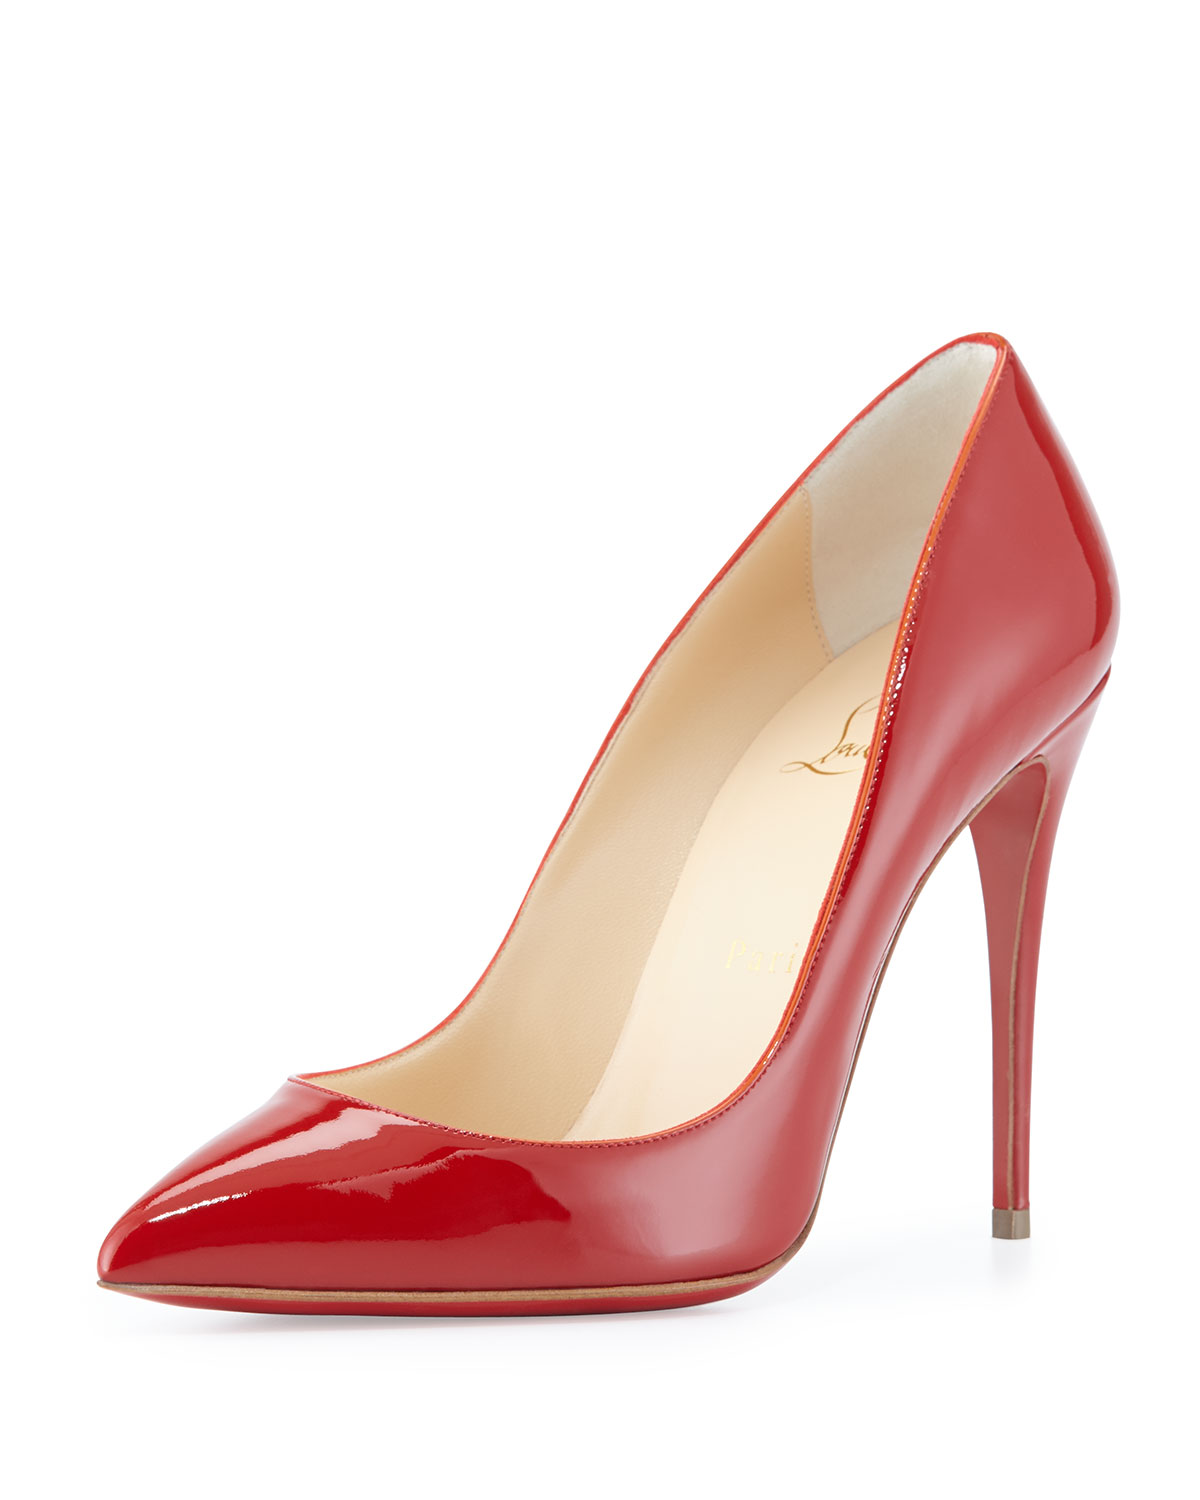 Christian Louboutin Pigalle Follies Patent Red Sole Pump, Red